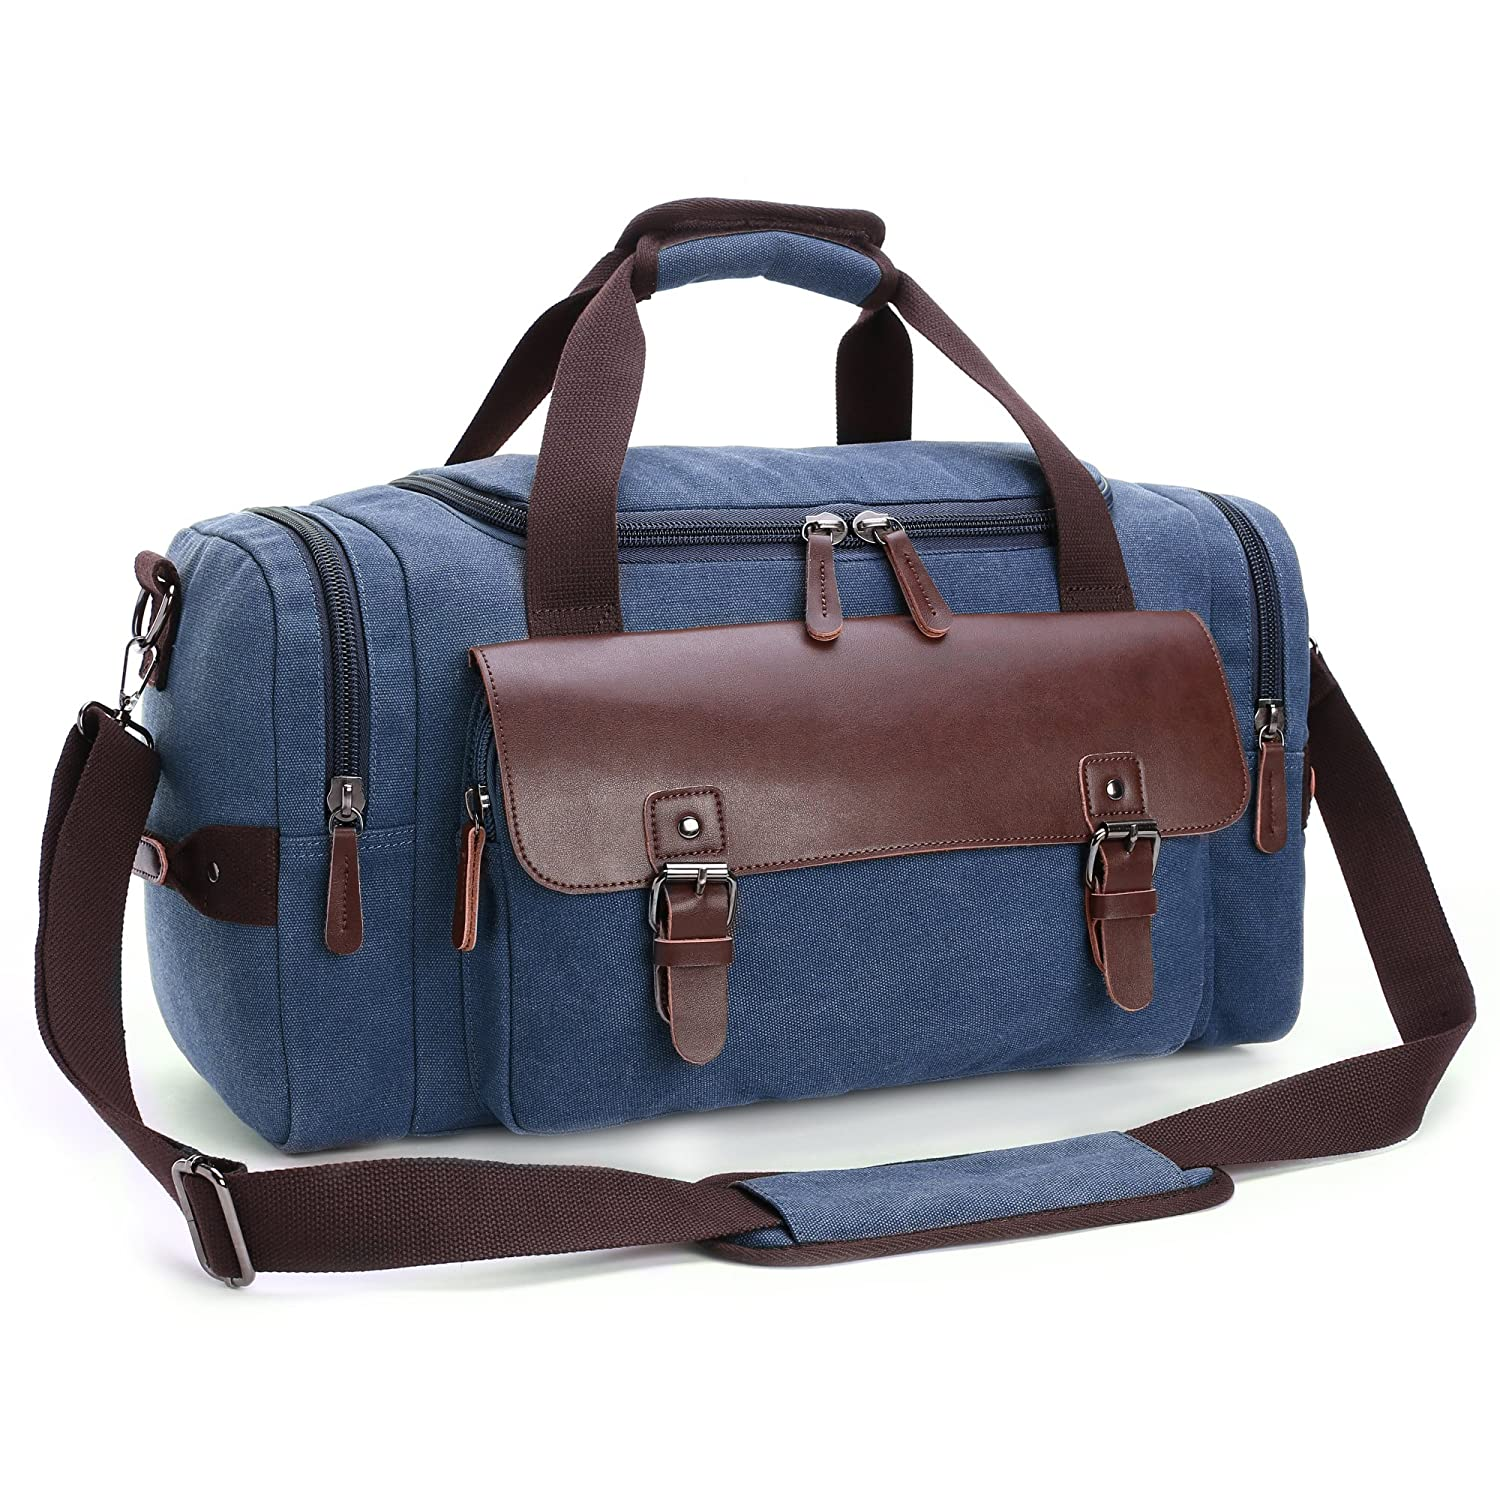 Canvas Duffel Bag, Cambond Weekender Overnight Bag Canvas PU Leather Travel  Tote Duffle Bag Carryon Bag for Men and Women (Blue) cde82eb31d